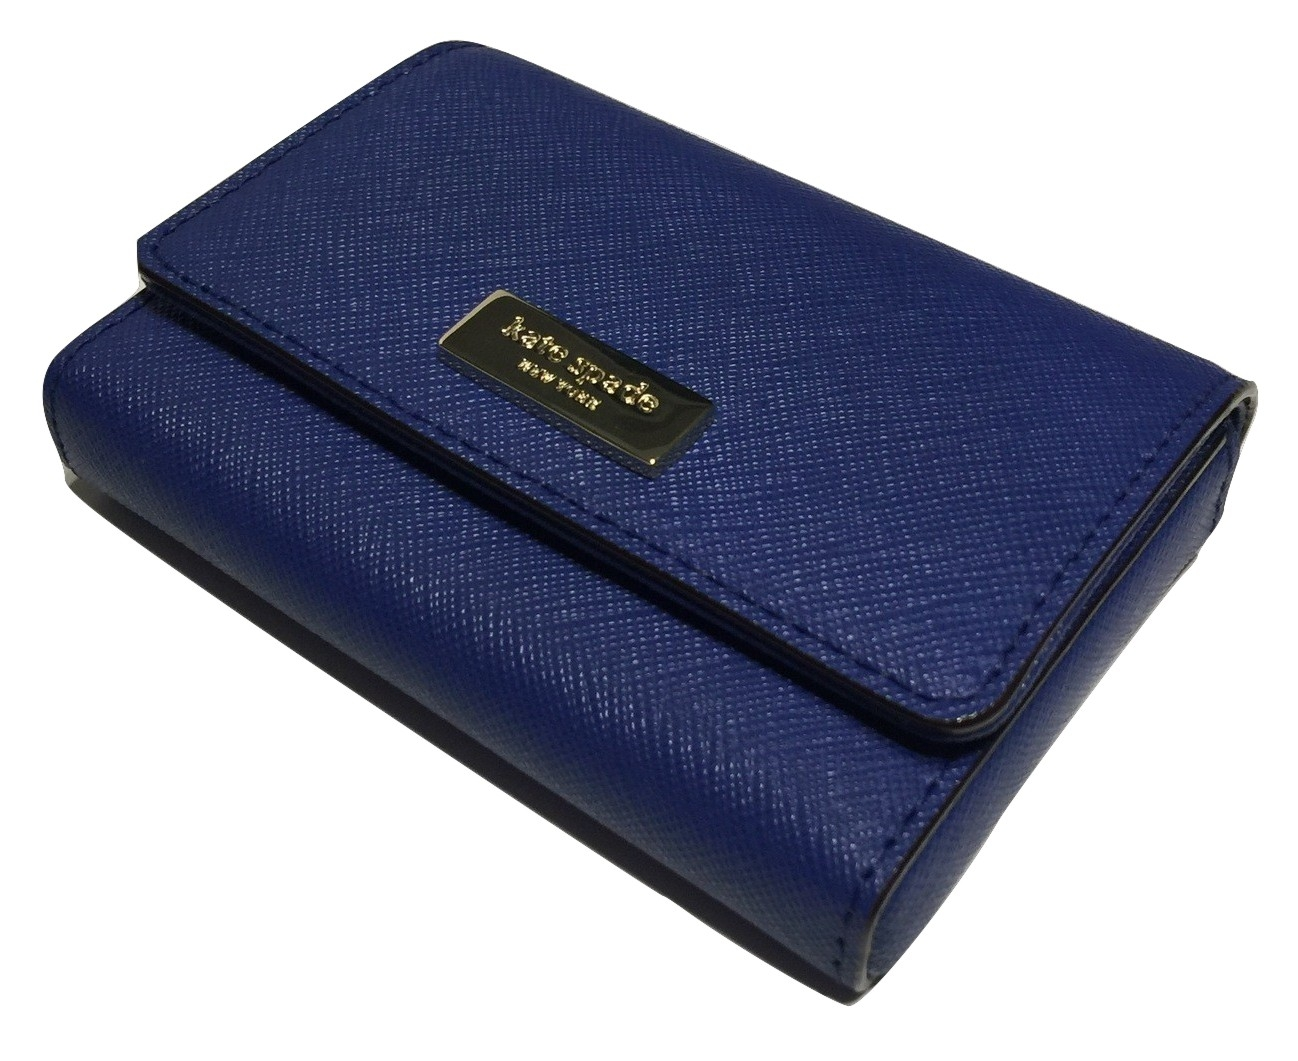 Large Business Card Case | Best Business Cards